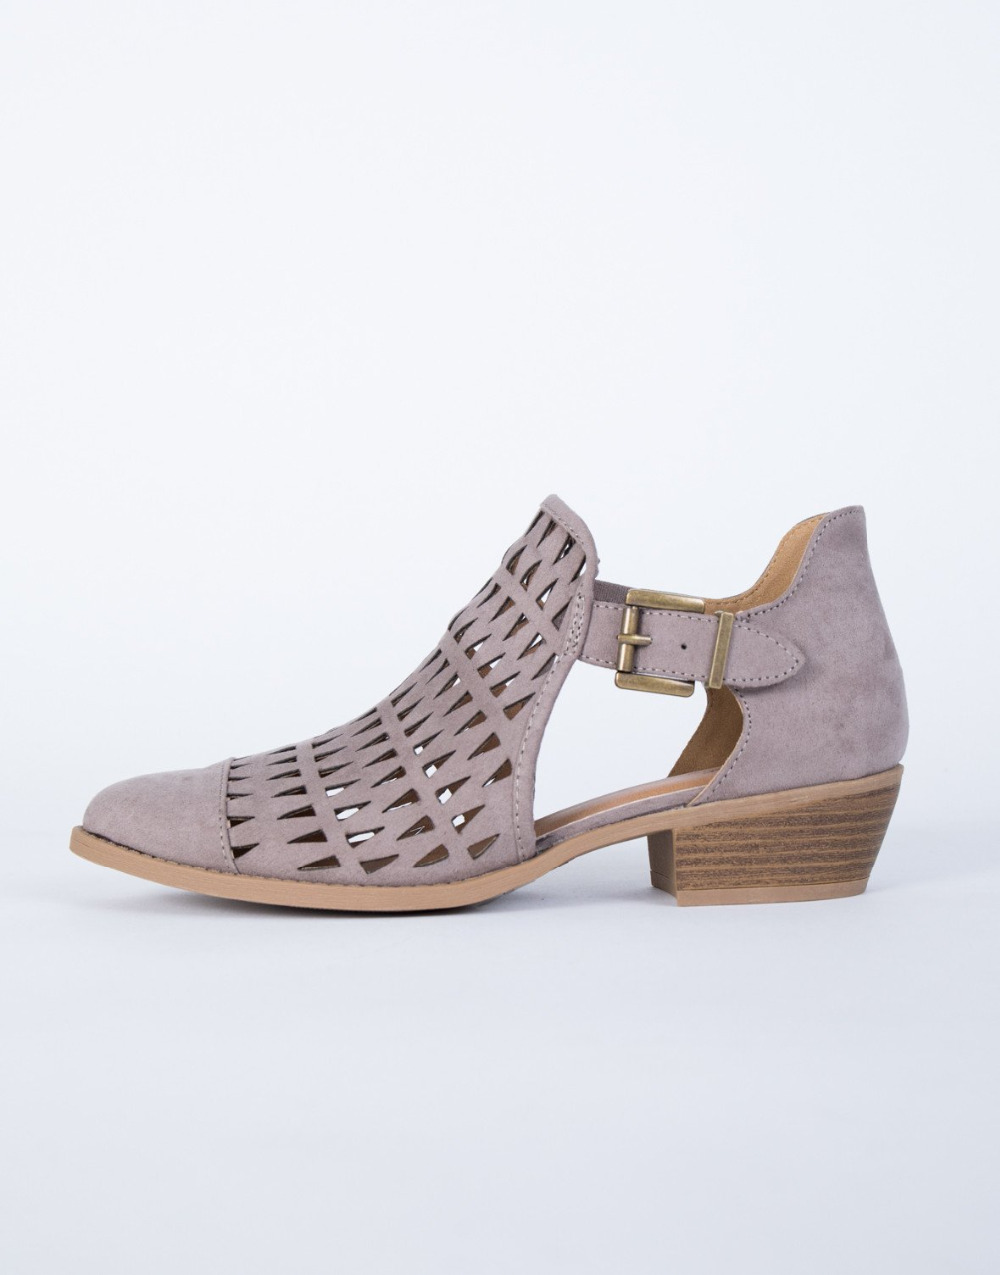 strapped-together-booties-light-taupe-1